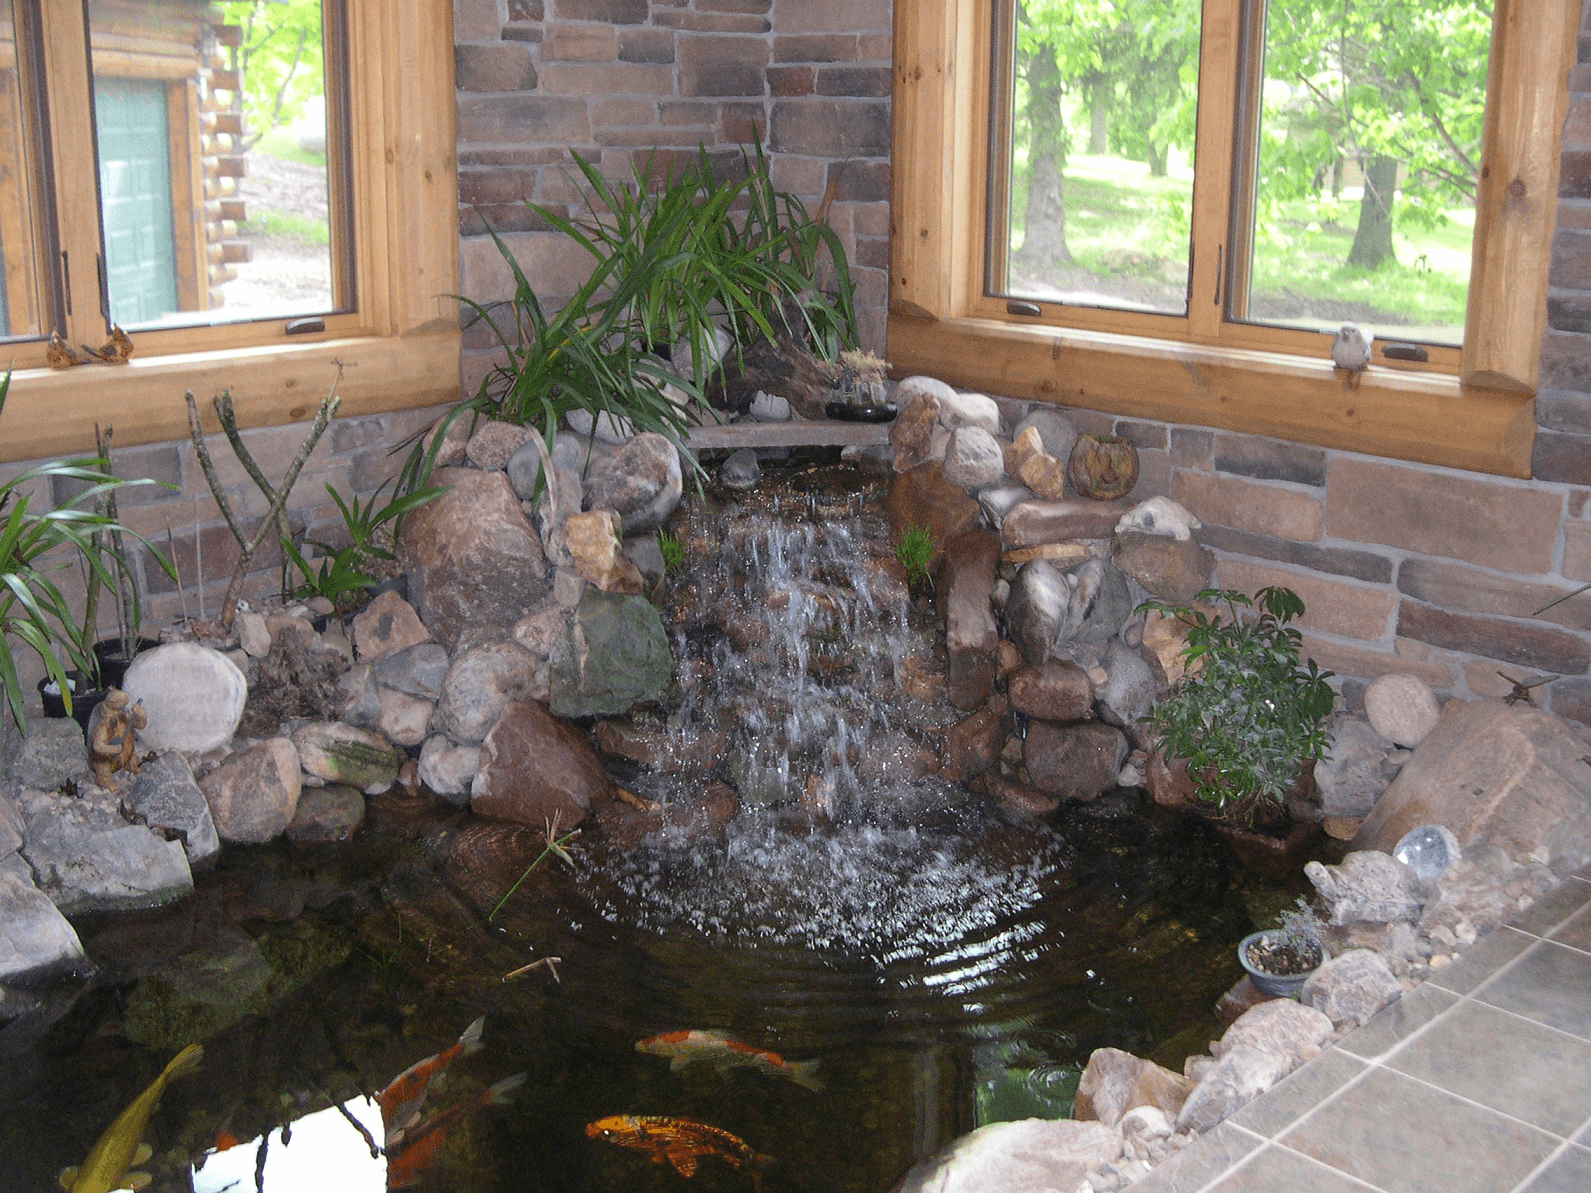 Indoor fish pond waterfall